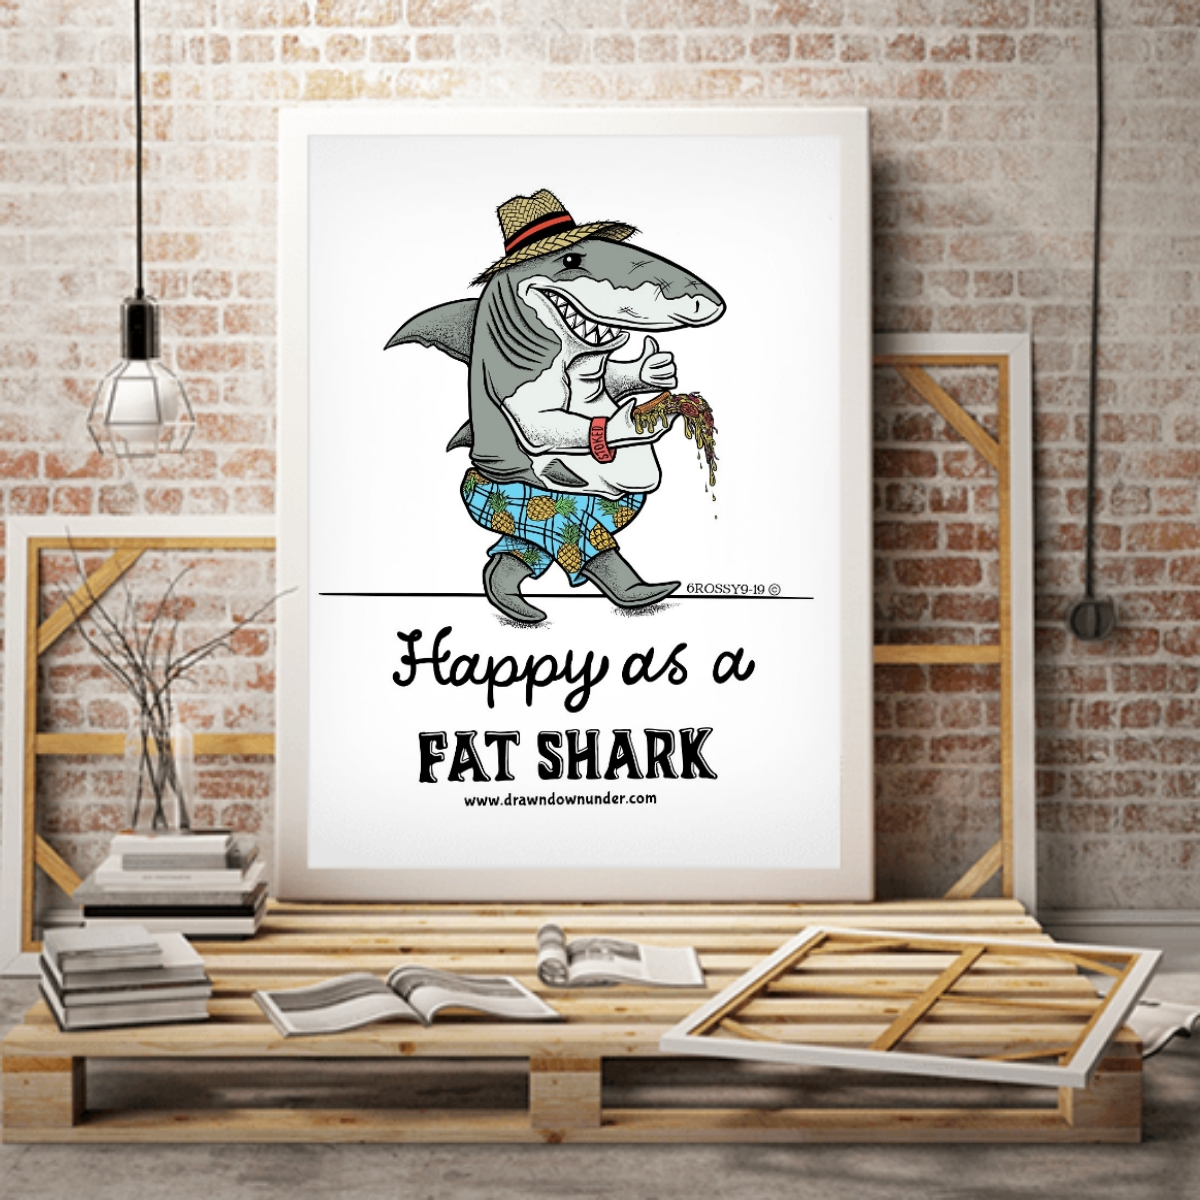 Happy as a Fat Shark – Print